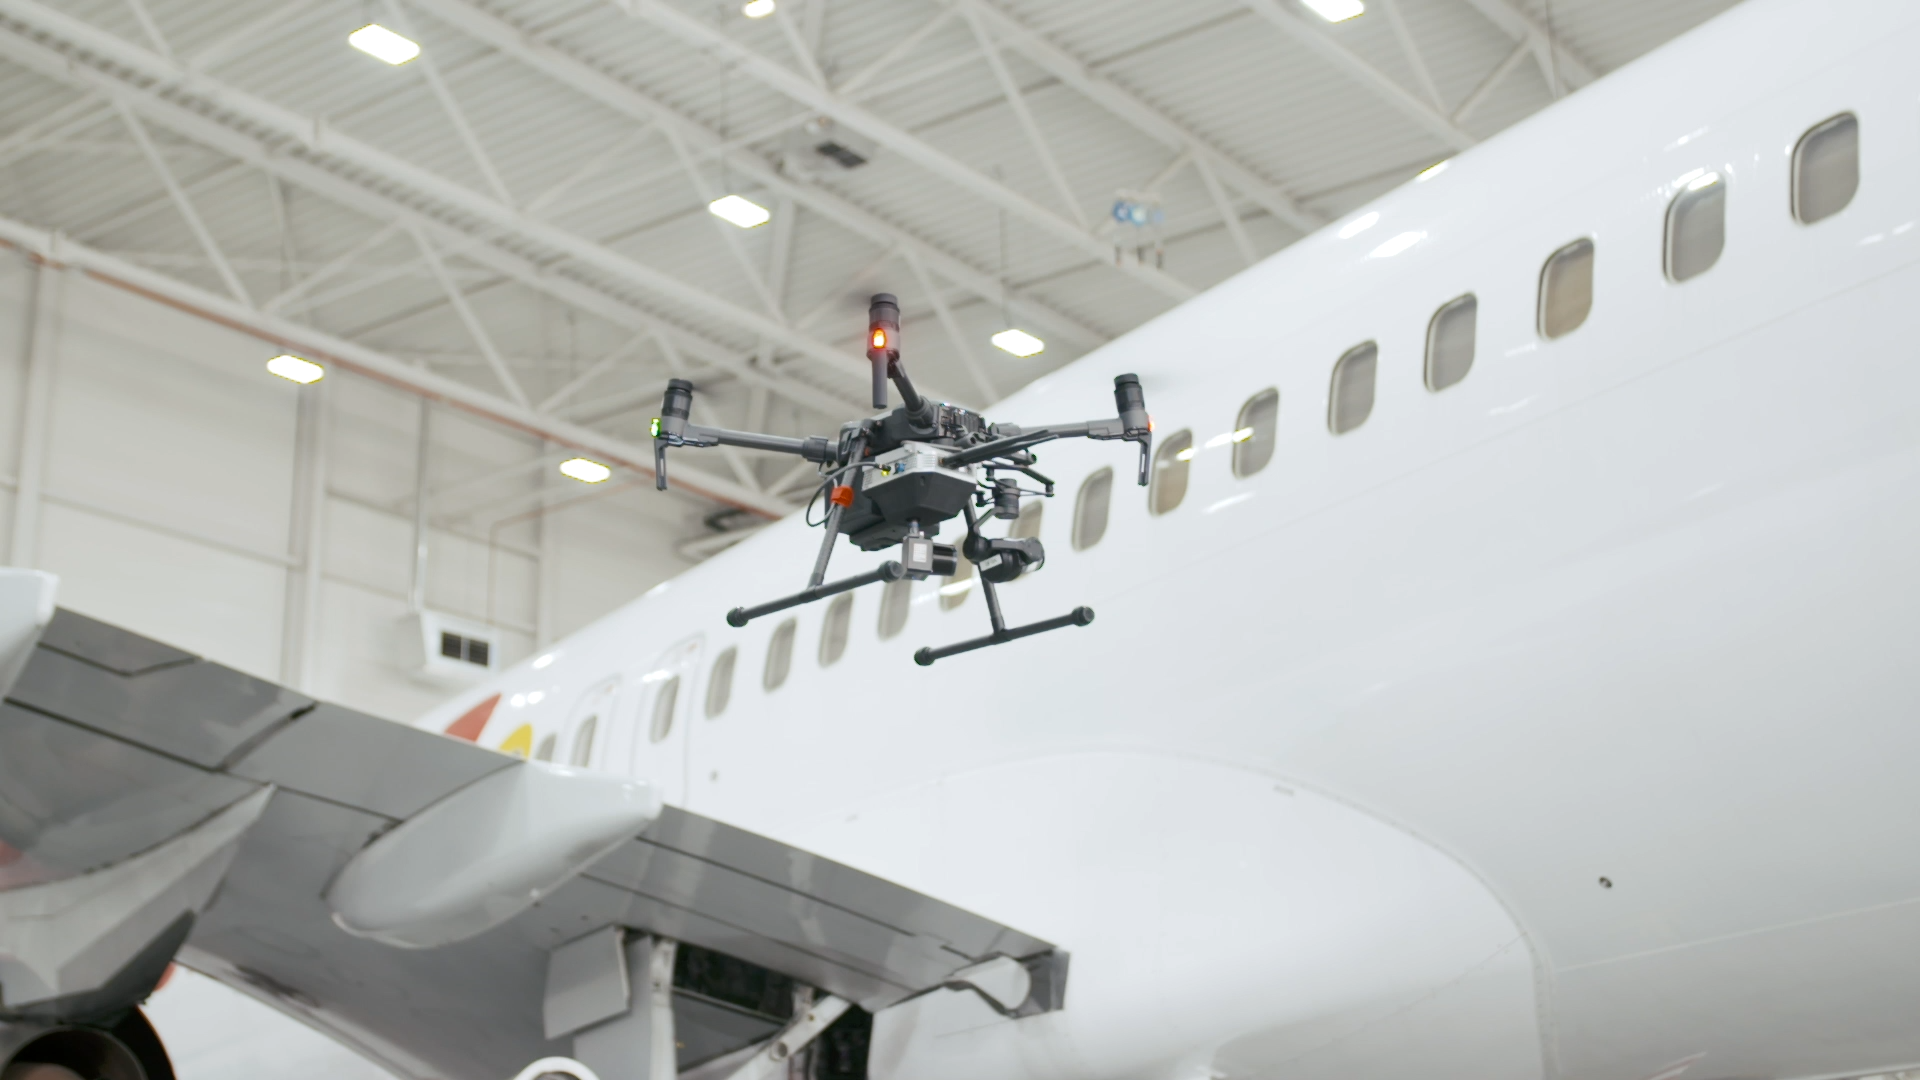 Picture of a Boeing 737 aircraft drone inspection